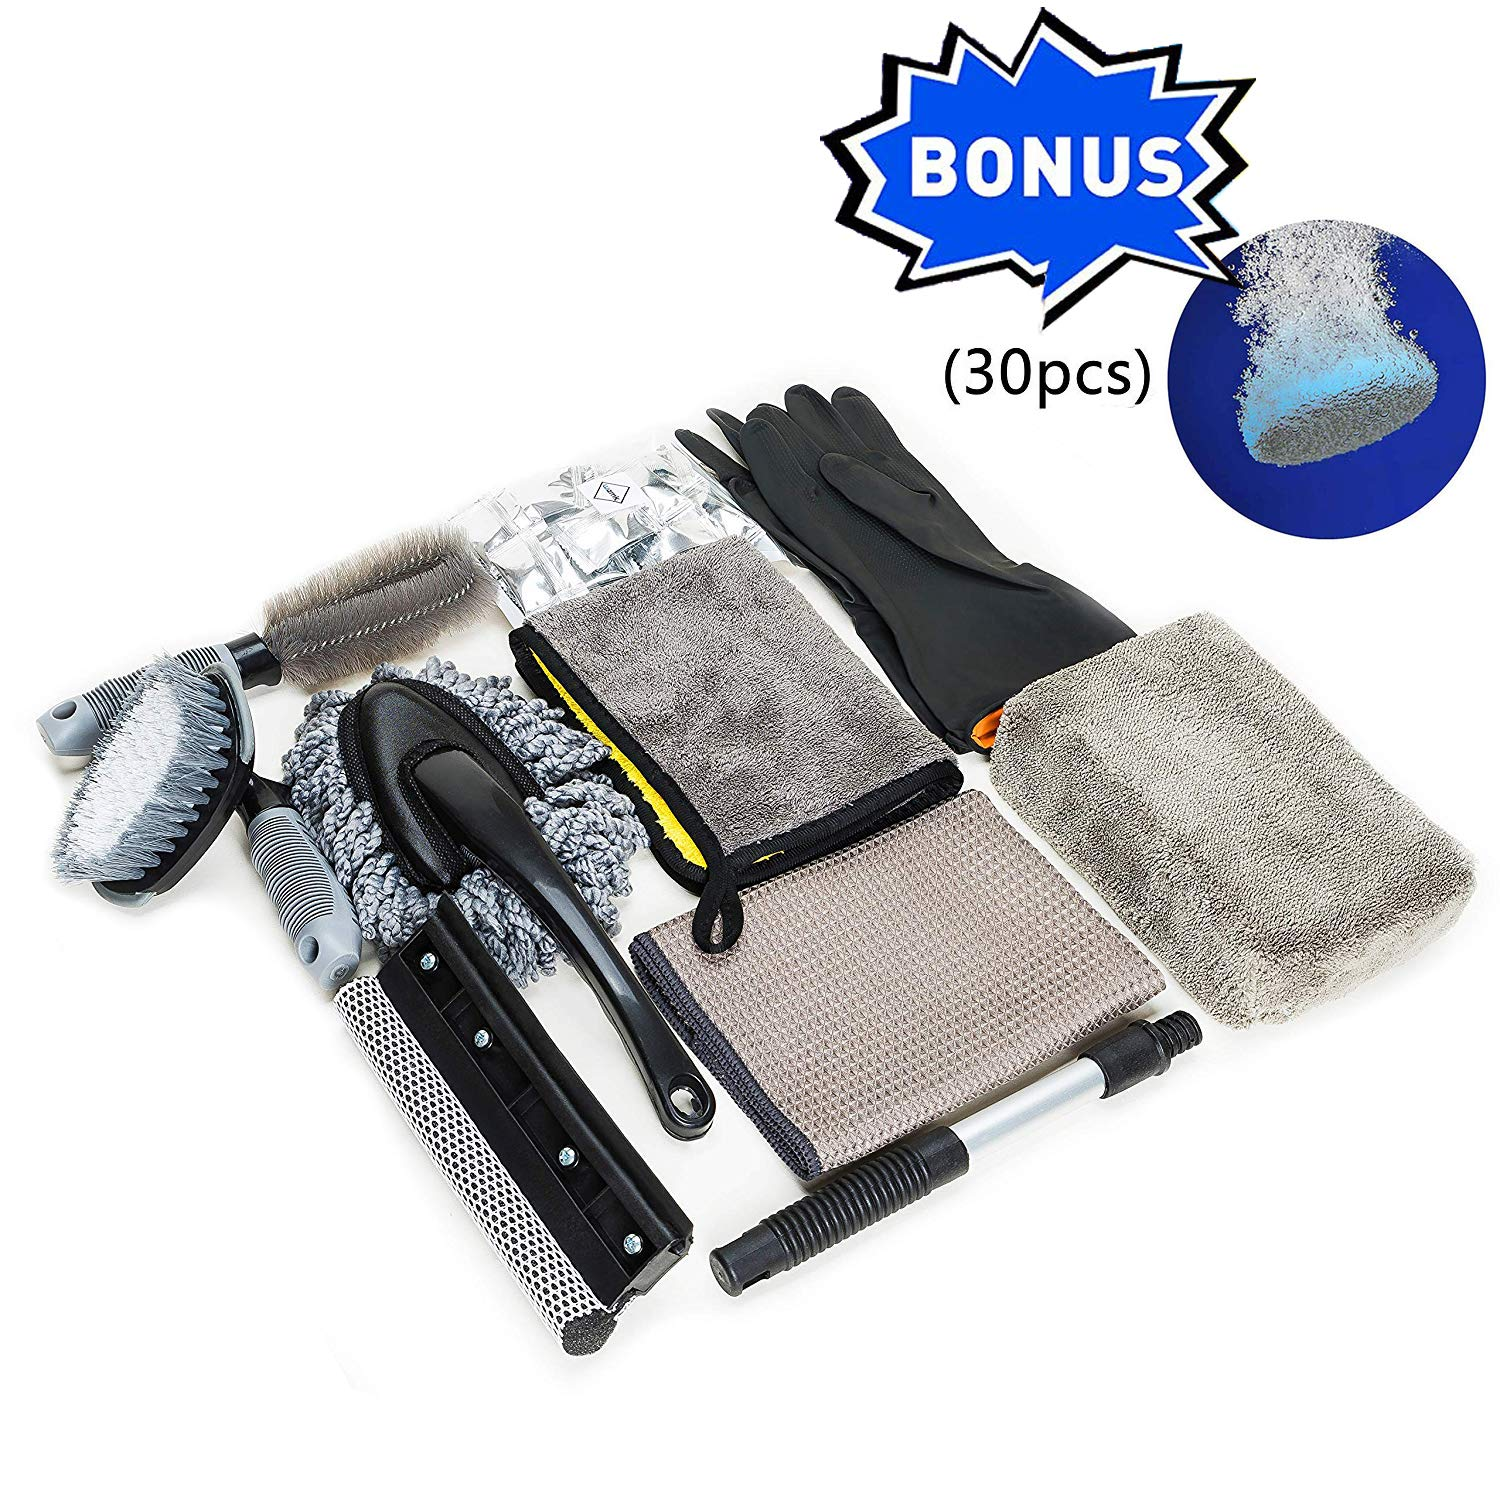 wemk 9pcs Car Cleaning Tools Kit With Car Duster Vent Brush Tire Brush Wash Mitt Sponge Wax Applicator Microfiber Cloths Window Water Blade Brush 30 Pcs Car Windshield Multifunctional effervescent spr